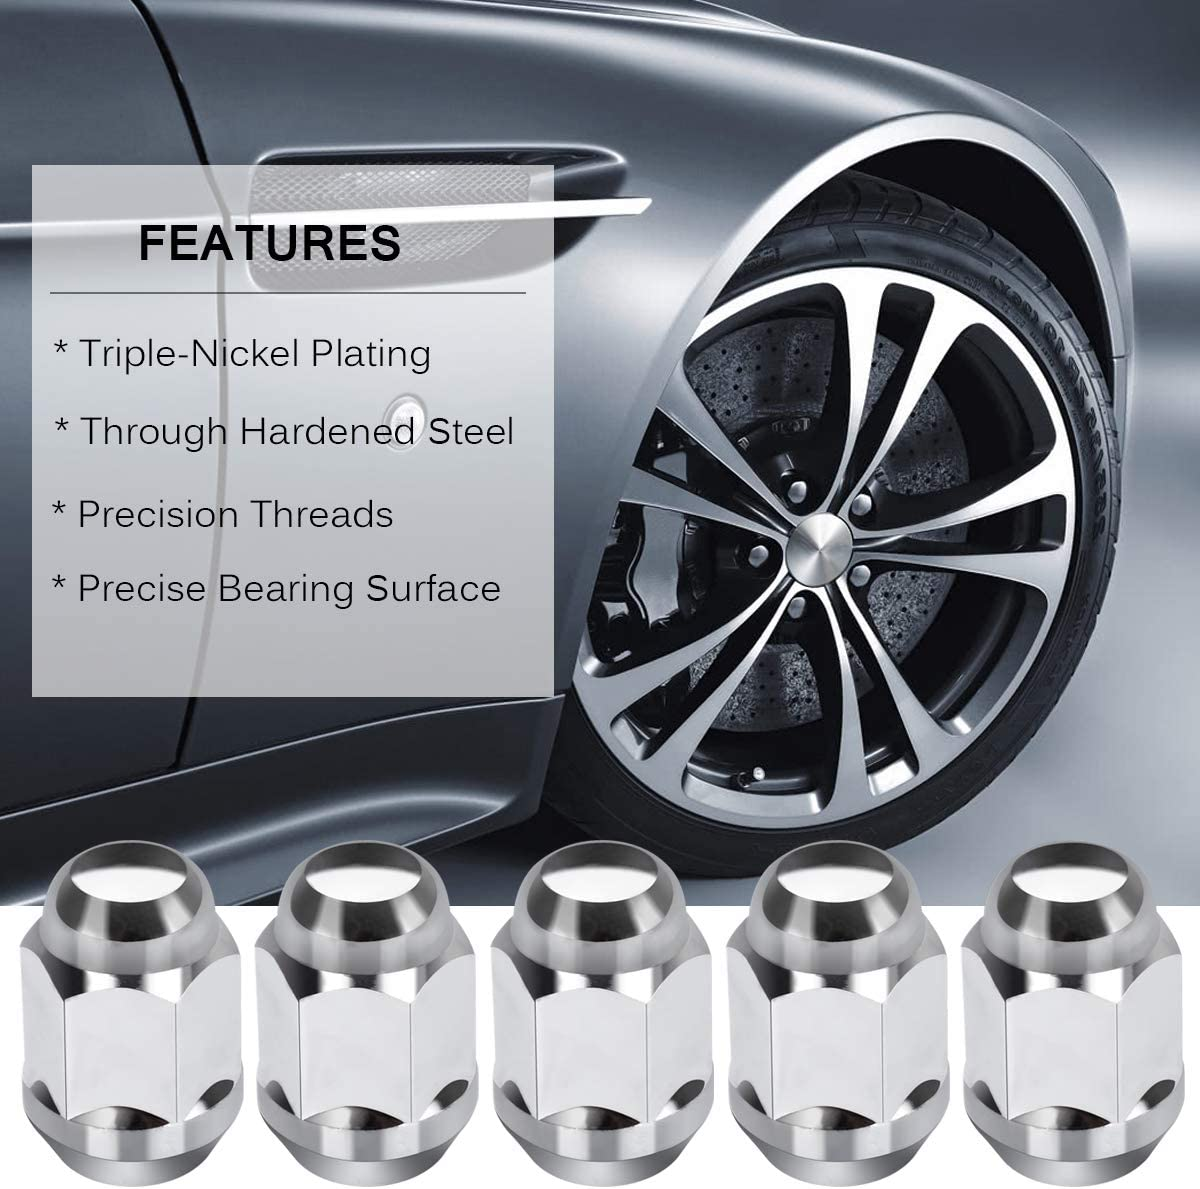 NPAUTO Lug Nut 14 x 1.5 Chrome Replacement for 2005 2006 2007 2008 2009 2010 Chrysler 300 2015-2019 Ford Mustang Edge Closed End 13//16 Hex 08-10 Dodge Challenger Charger Pack of 20